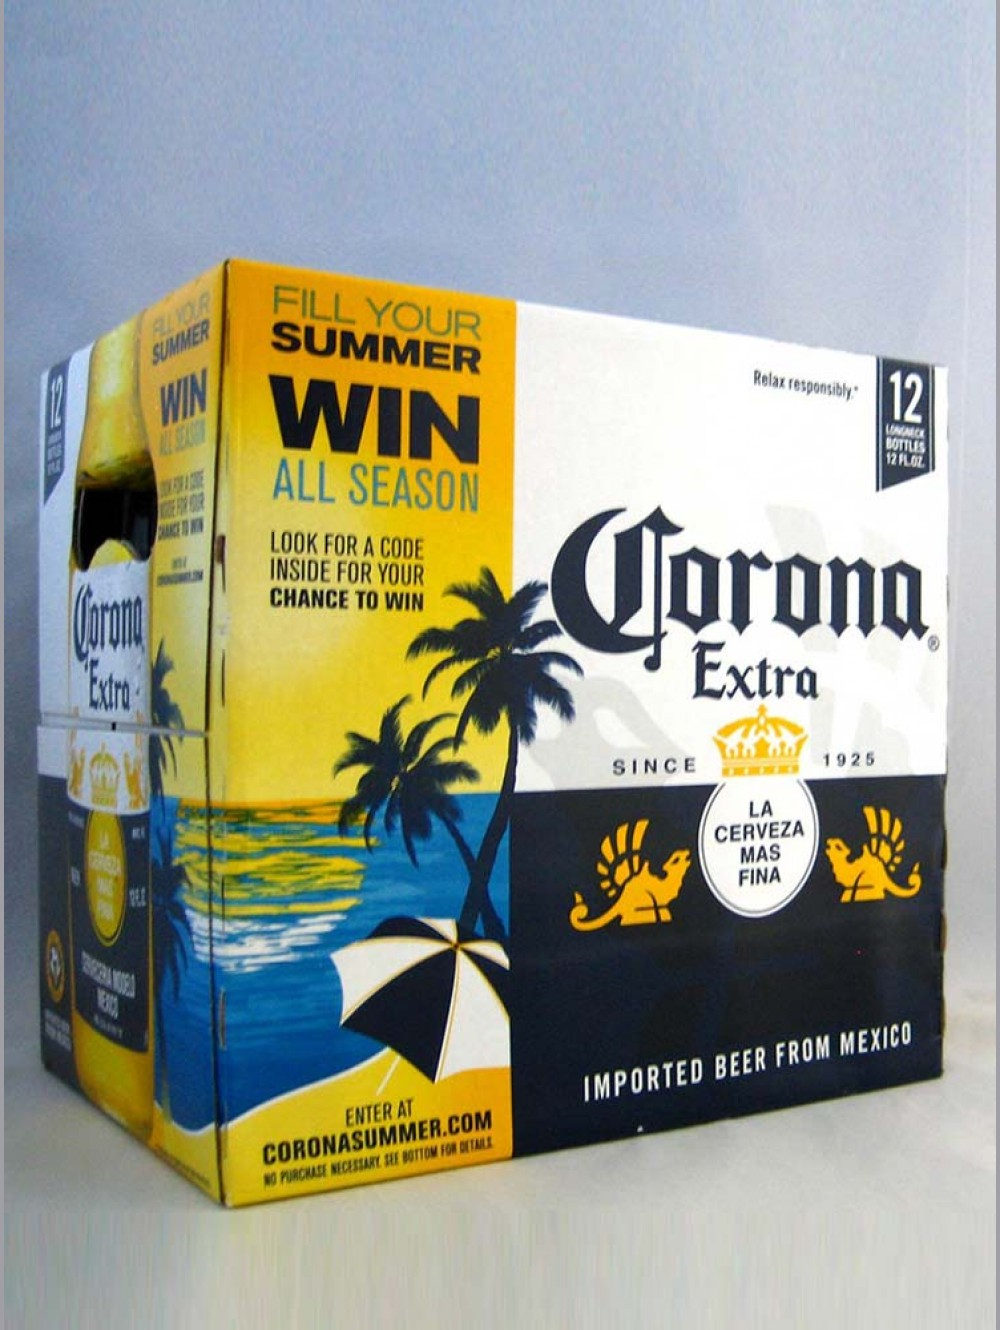 ORDER CORONA EXTRA LAGER BEER